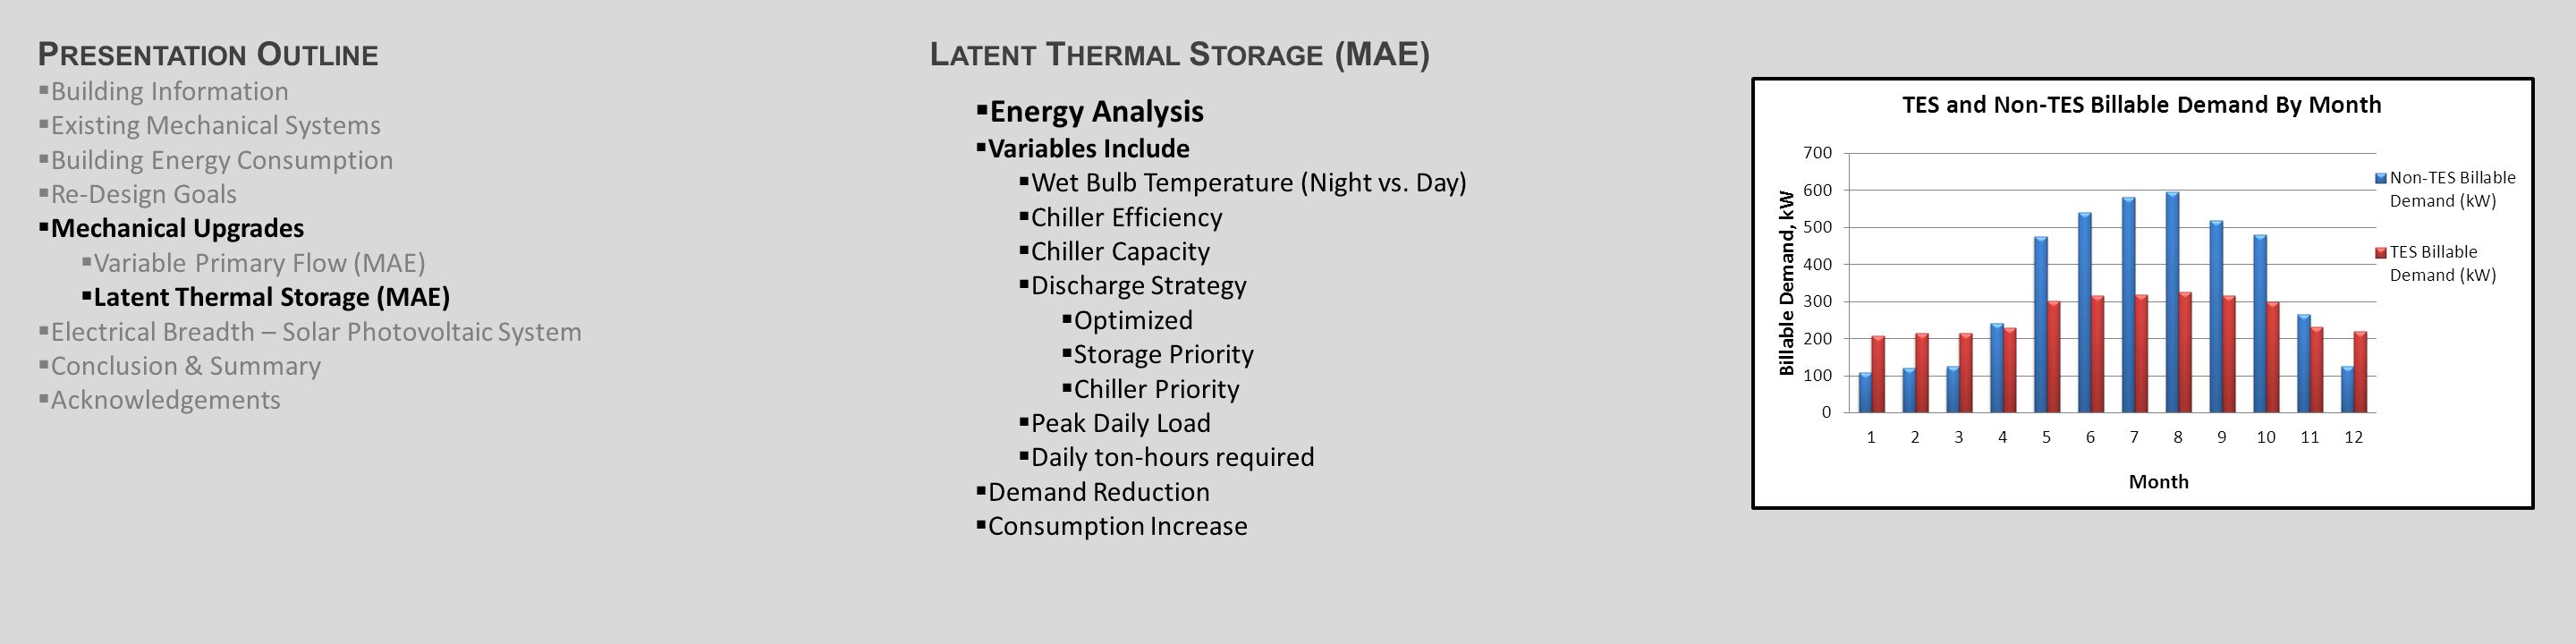 L ATENT T HERMAL S TORAGE (MAE)  Energy Analysis  Variables Include  Wet Bulb Temperature (Night vs.